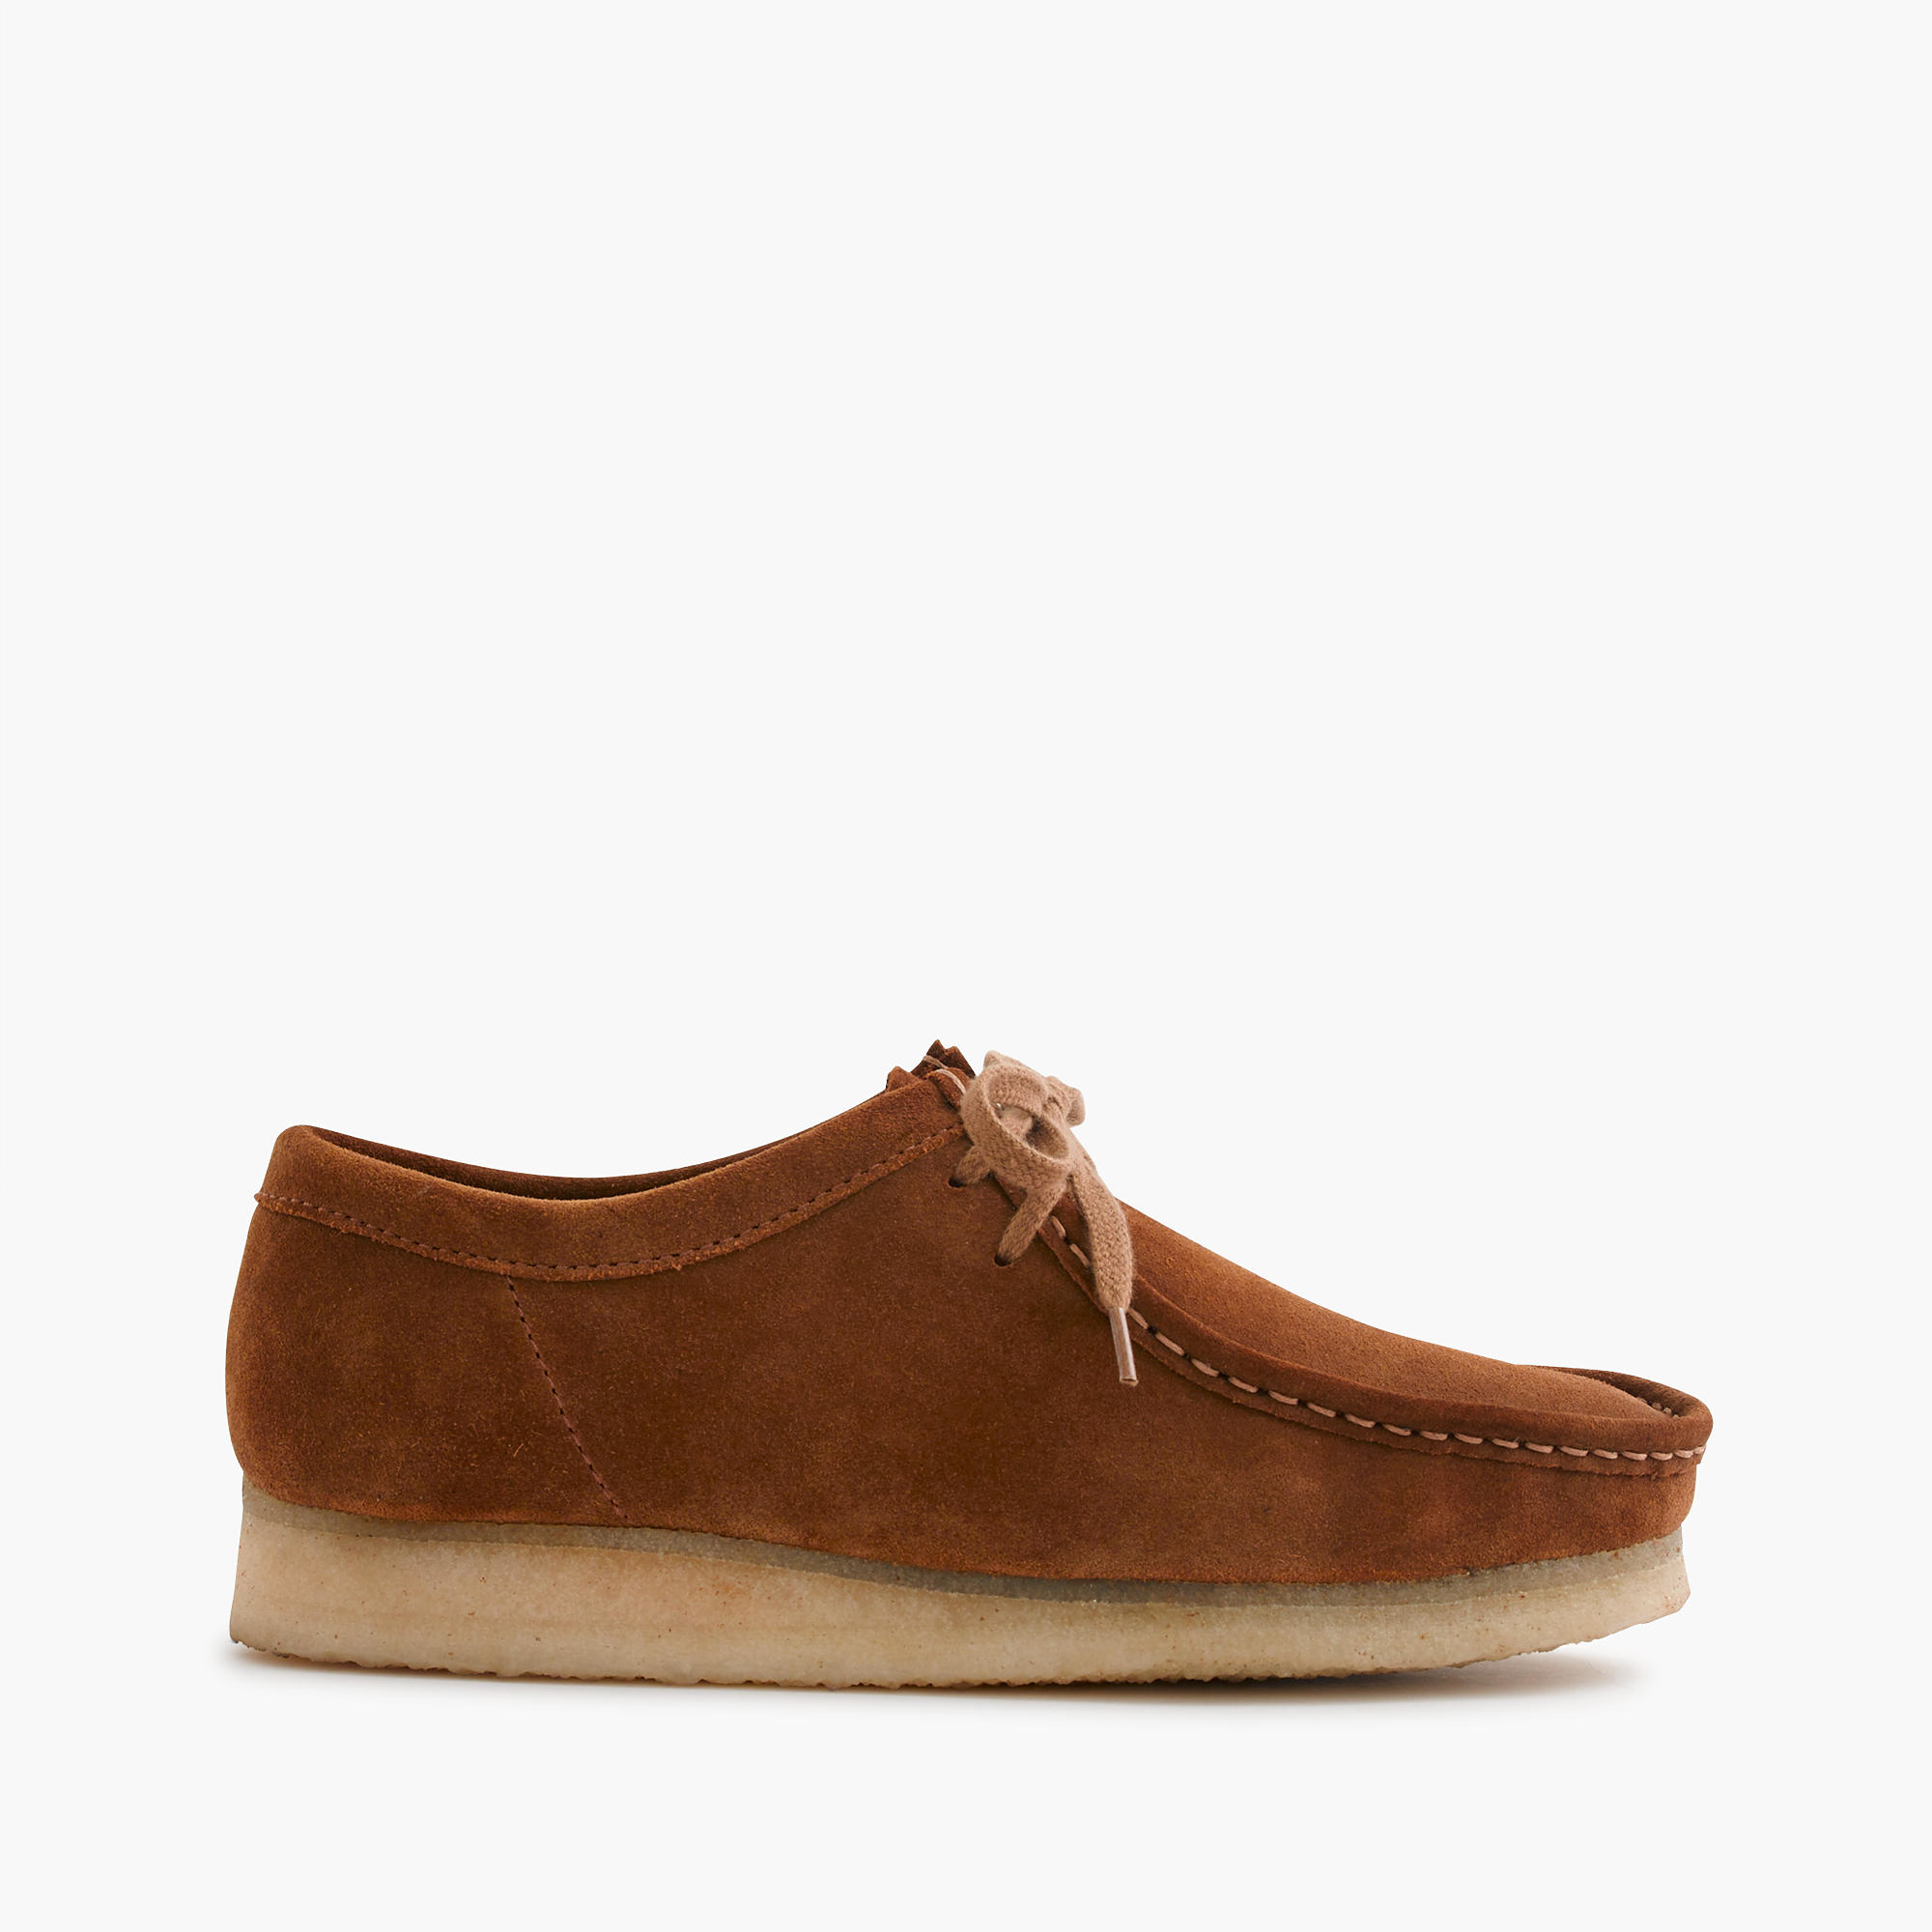 j crew clarks originals wallabee shoes in brown for lyst